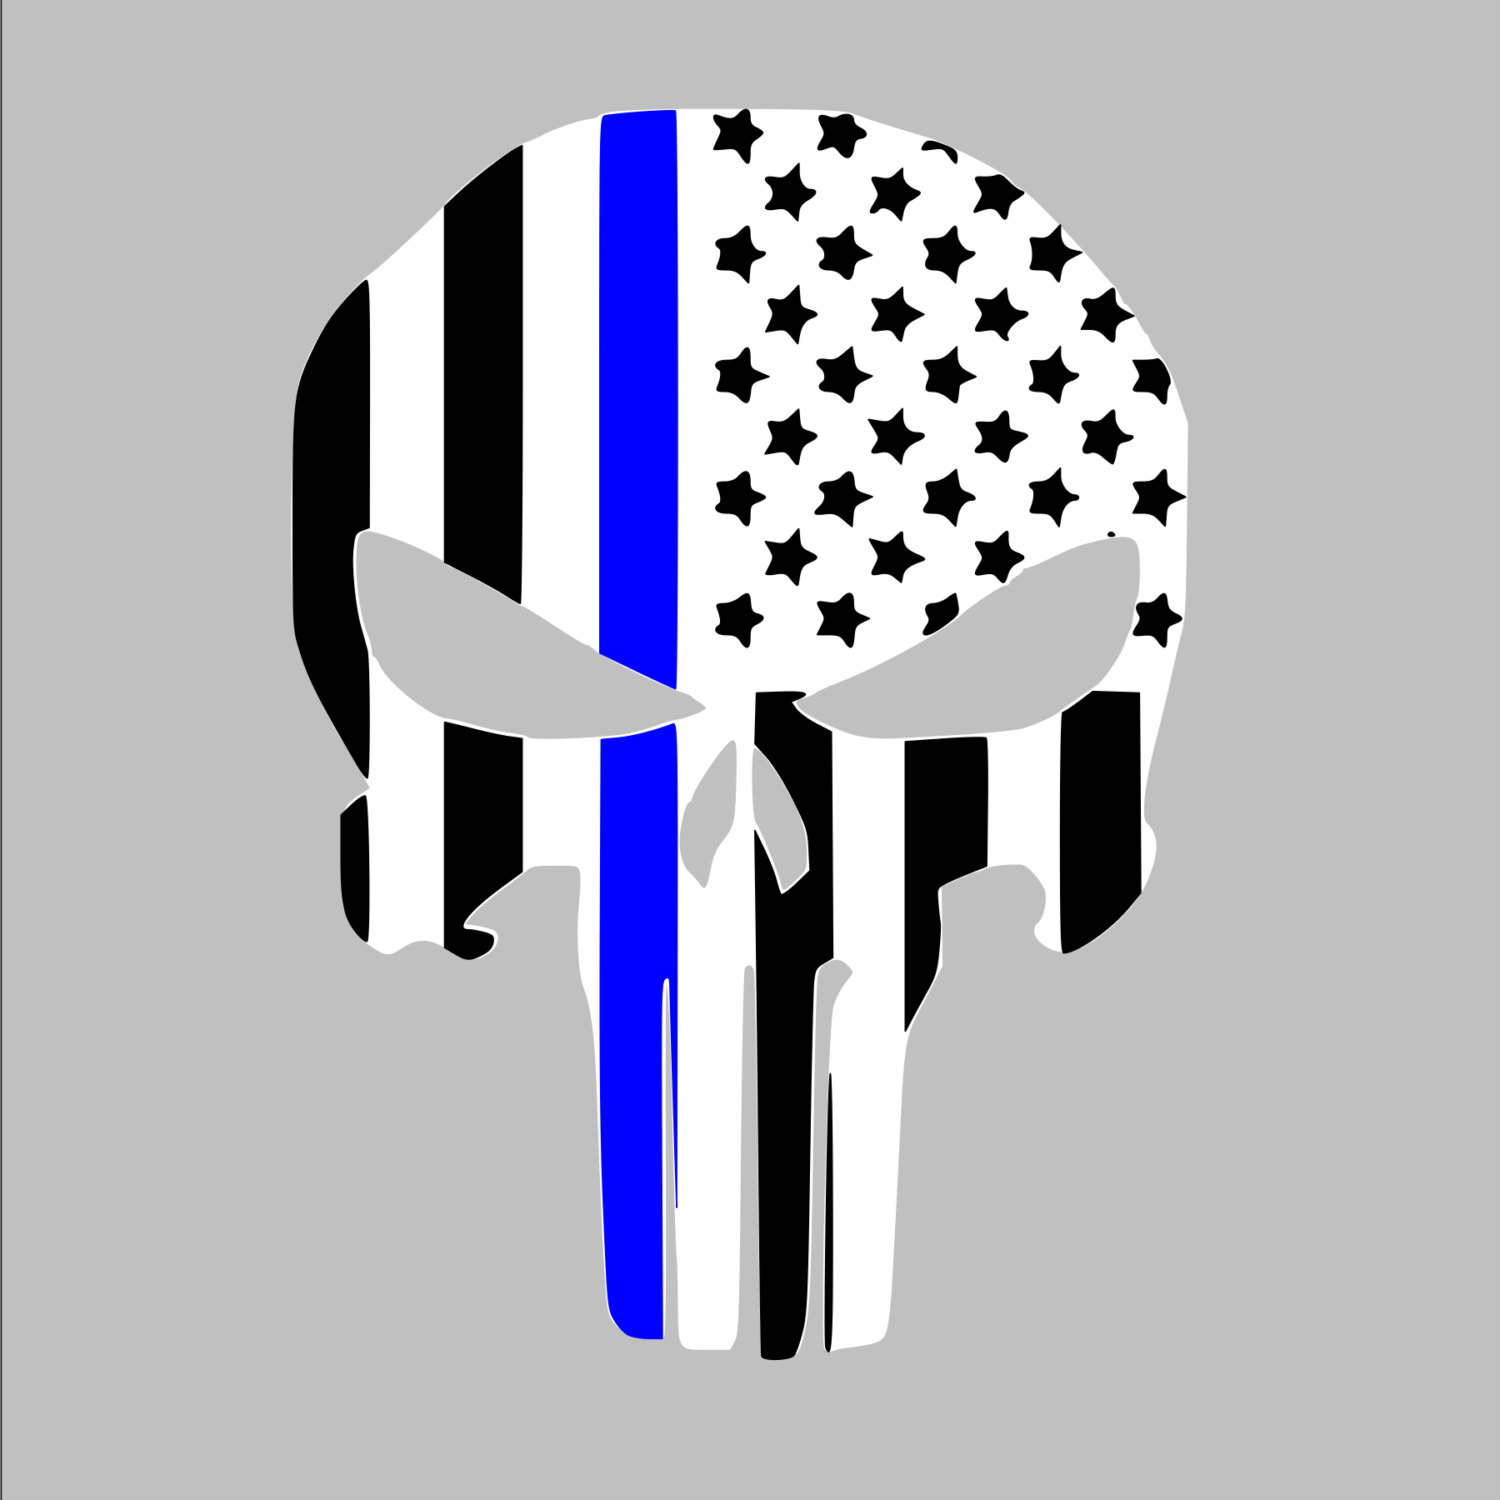 Thin blue line clipart banner black and white Thin blue line | Etsy banner black and white